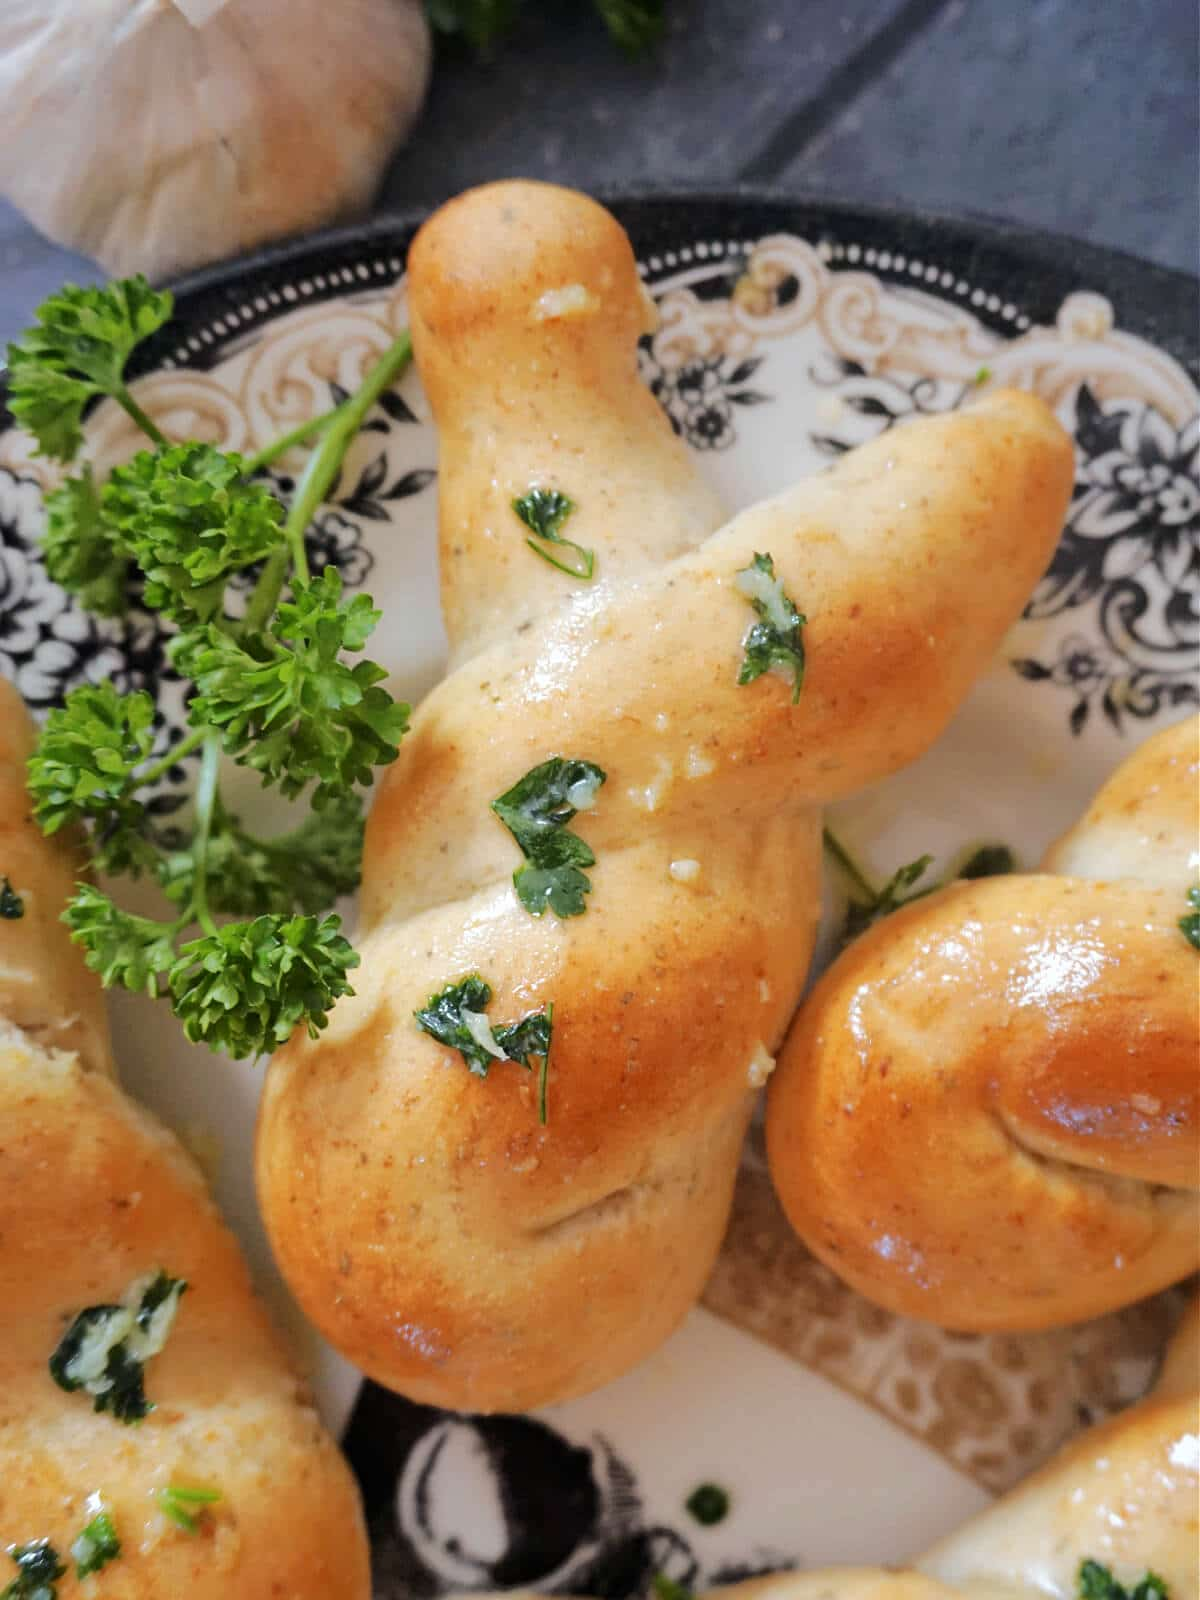 Overhead shot of a bunny-shaped garlic knot on a plate with fresh parsley